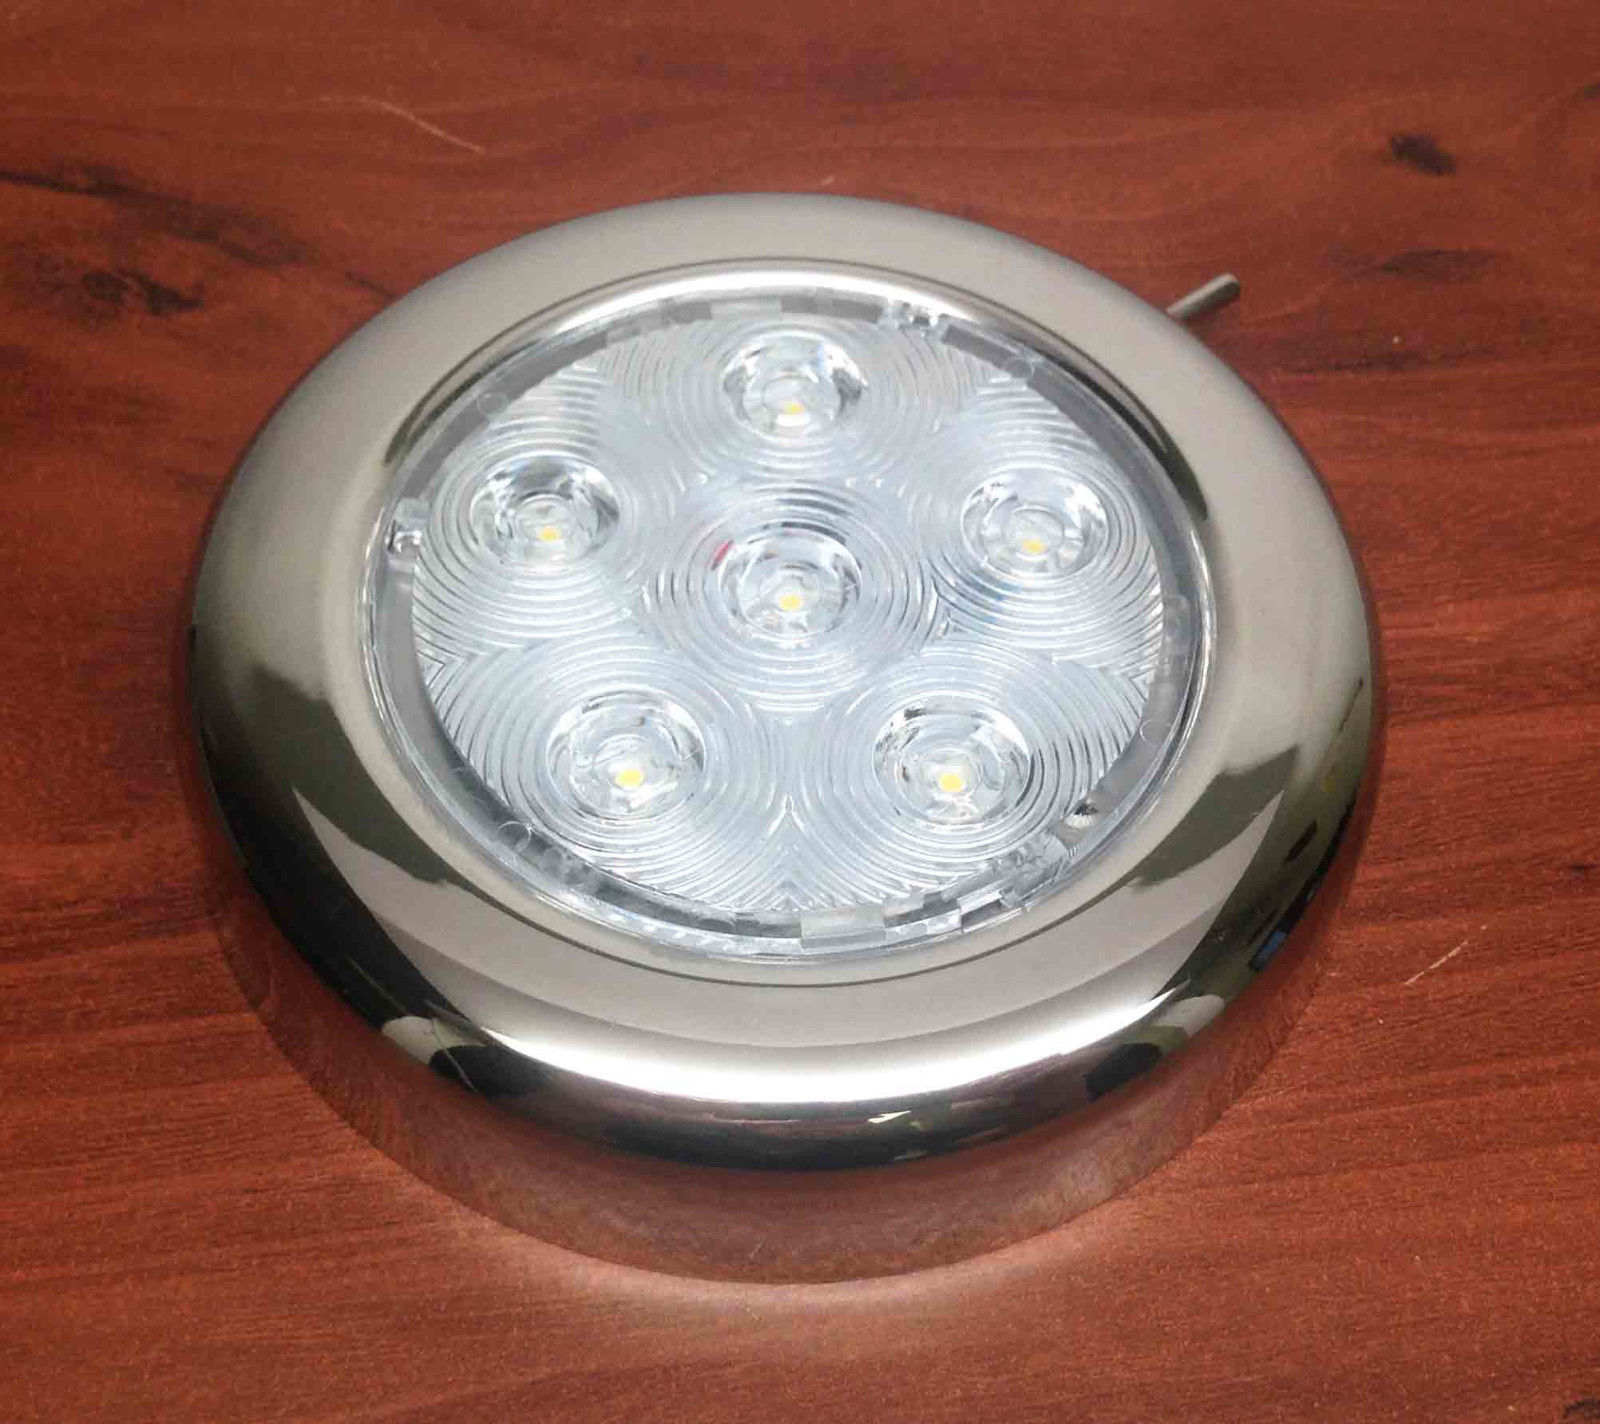 Replace Boat Lights With Led: RV MARINE BOAT TRAILER LED BRIGHT CEILING LIGHT S.S